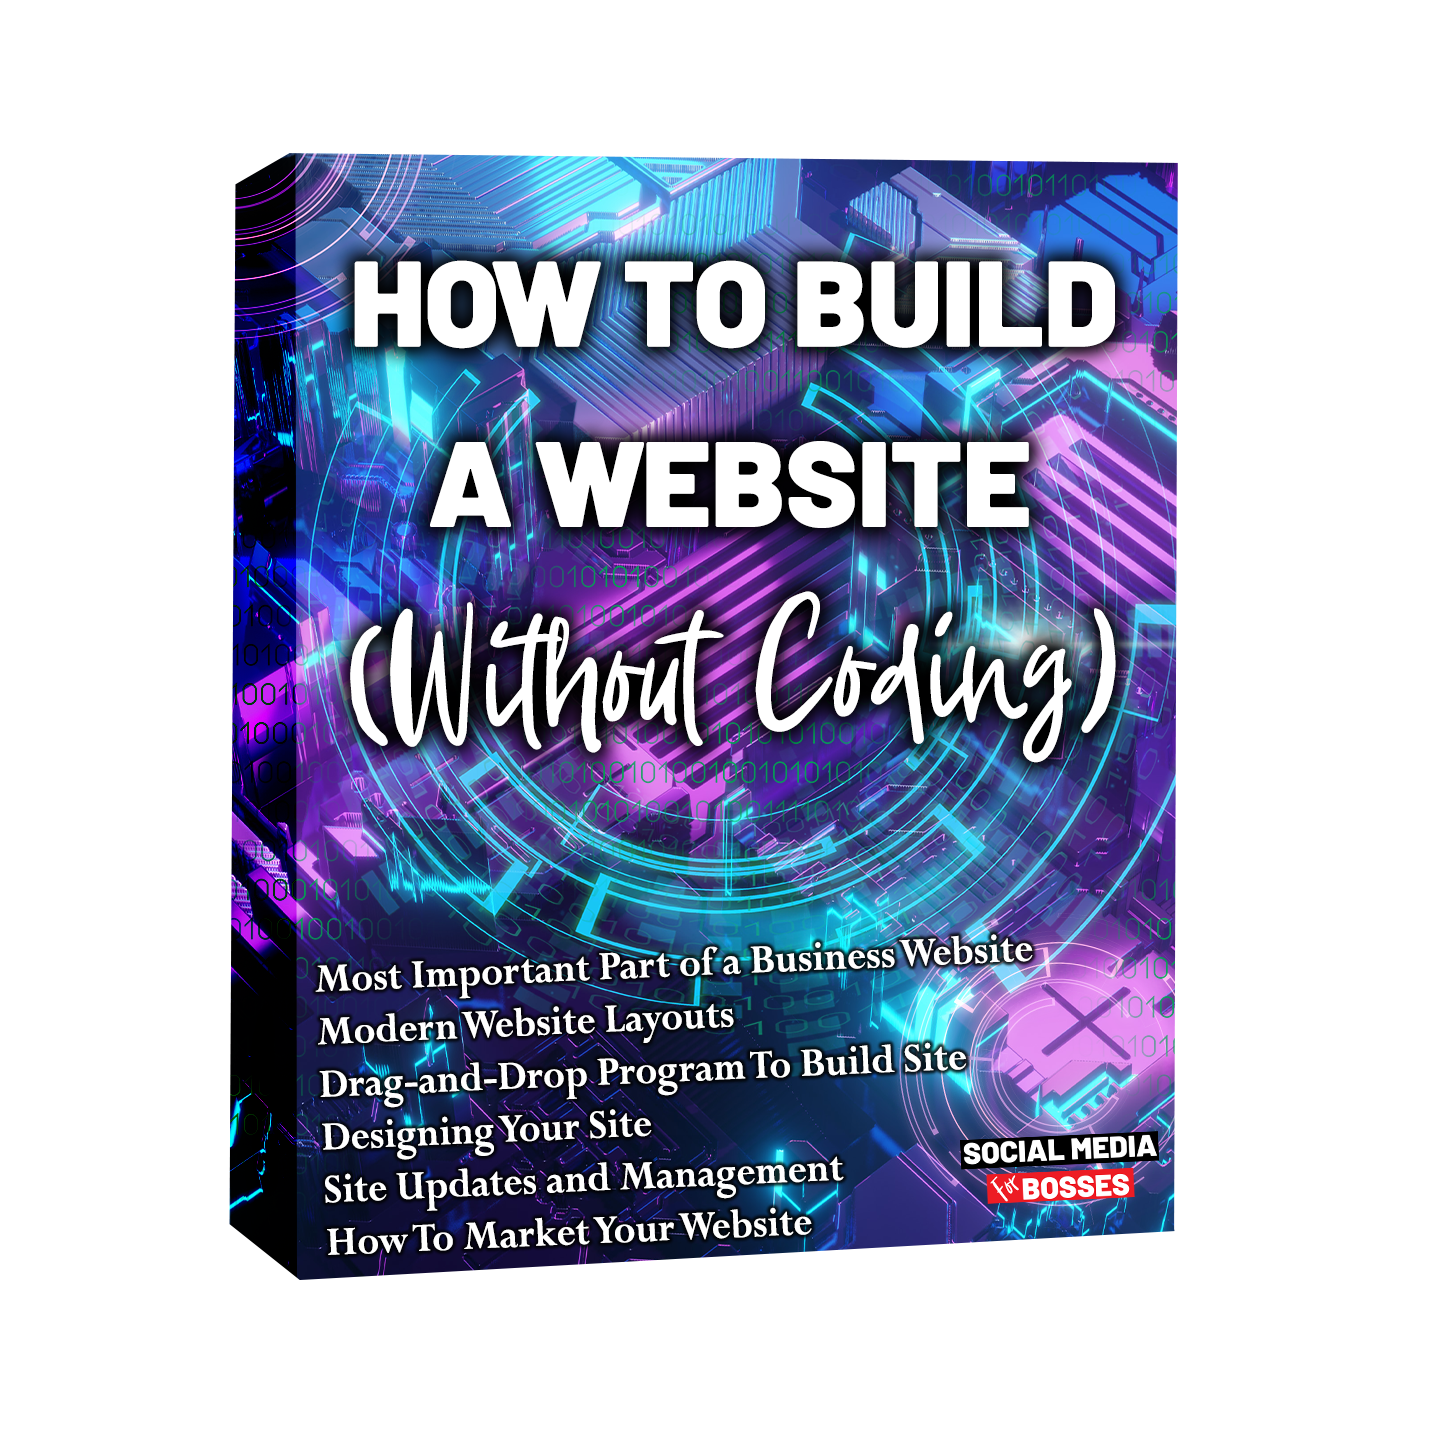 How To Build A Website (Without Coding)